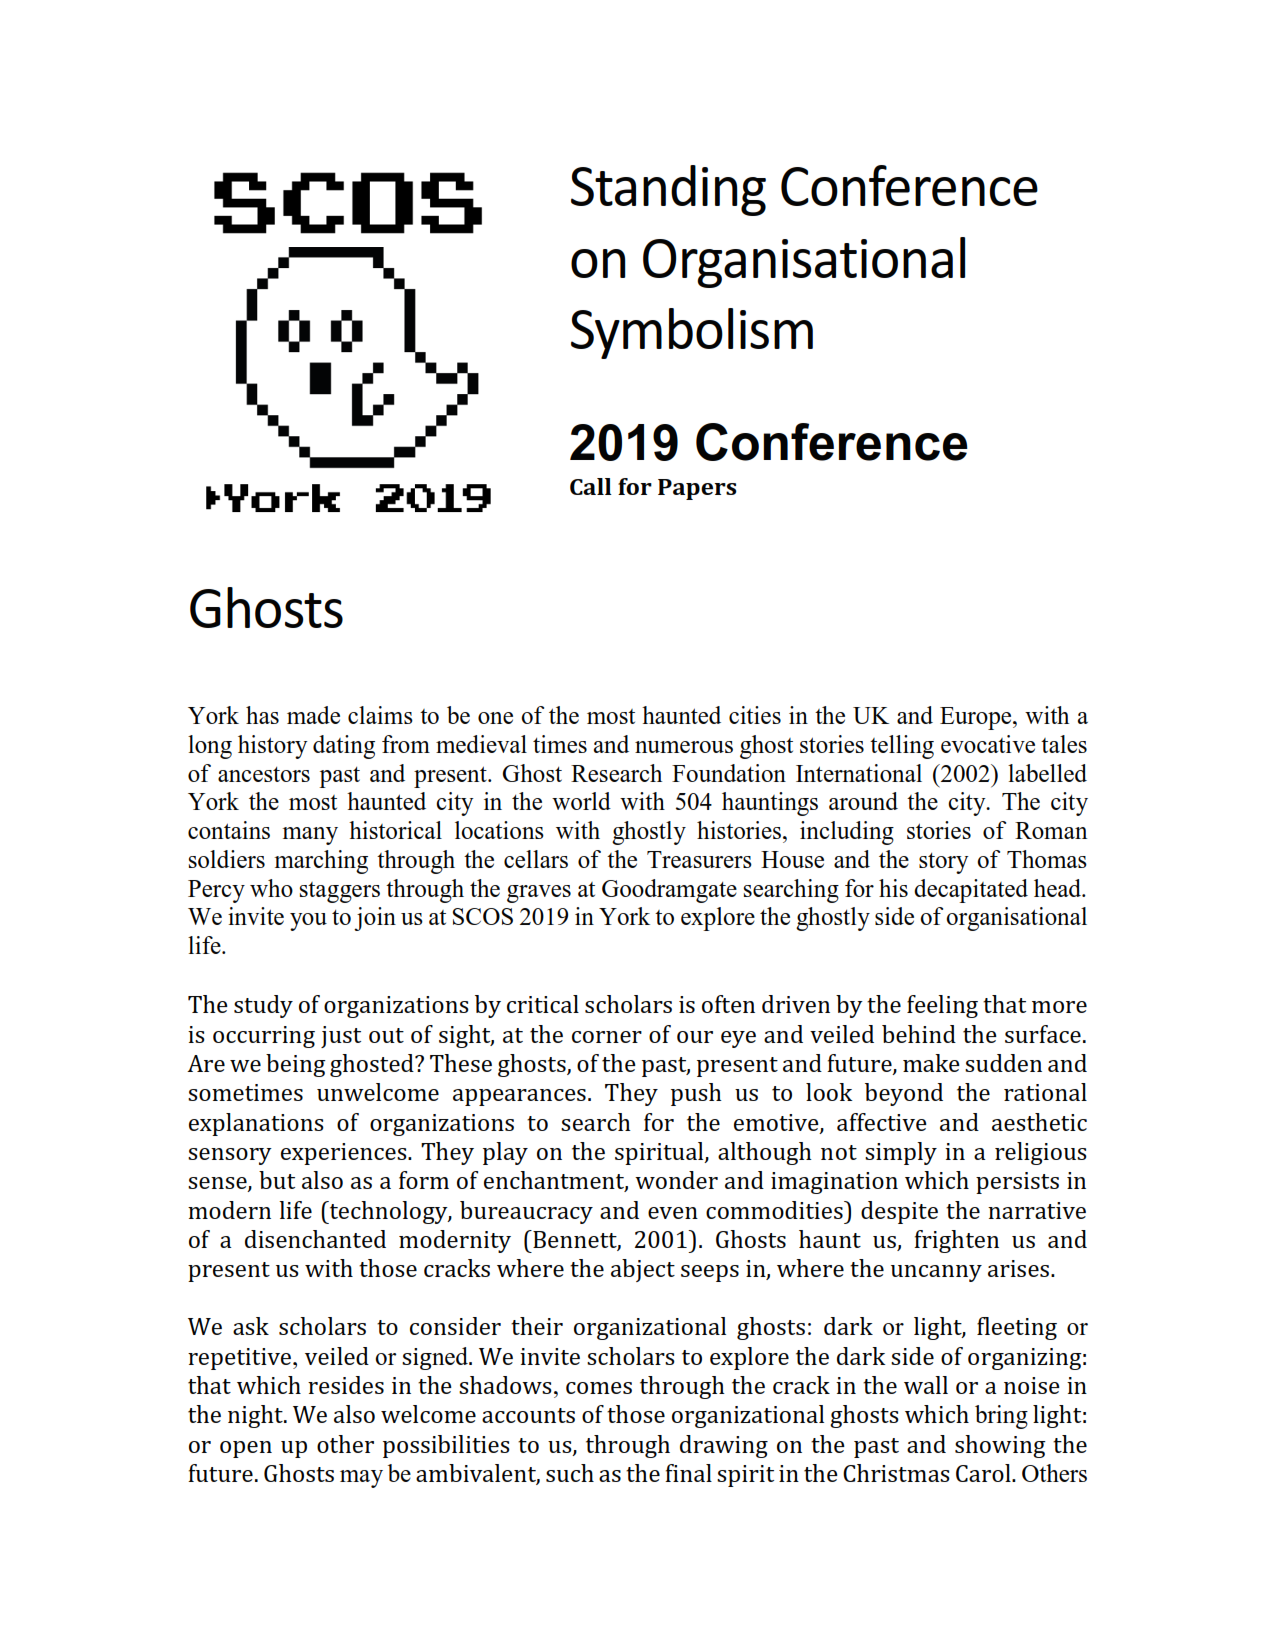 SCOS 2019 call for papers 001